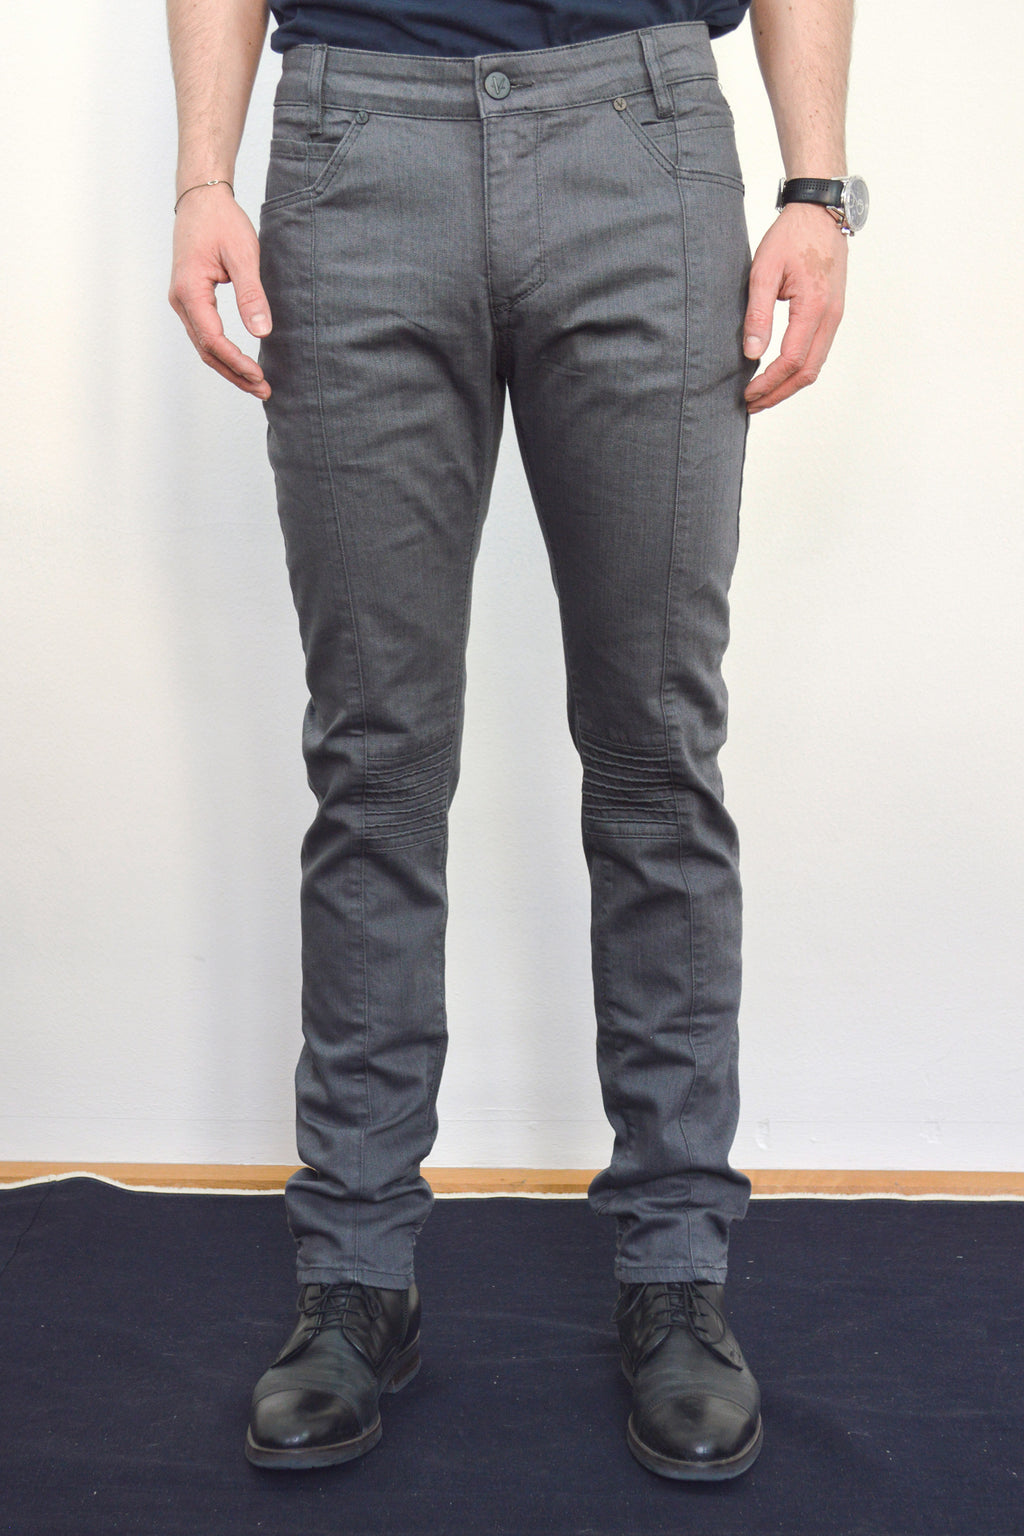 Second Choice - Francis Skinny Jeans Grey